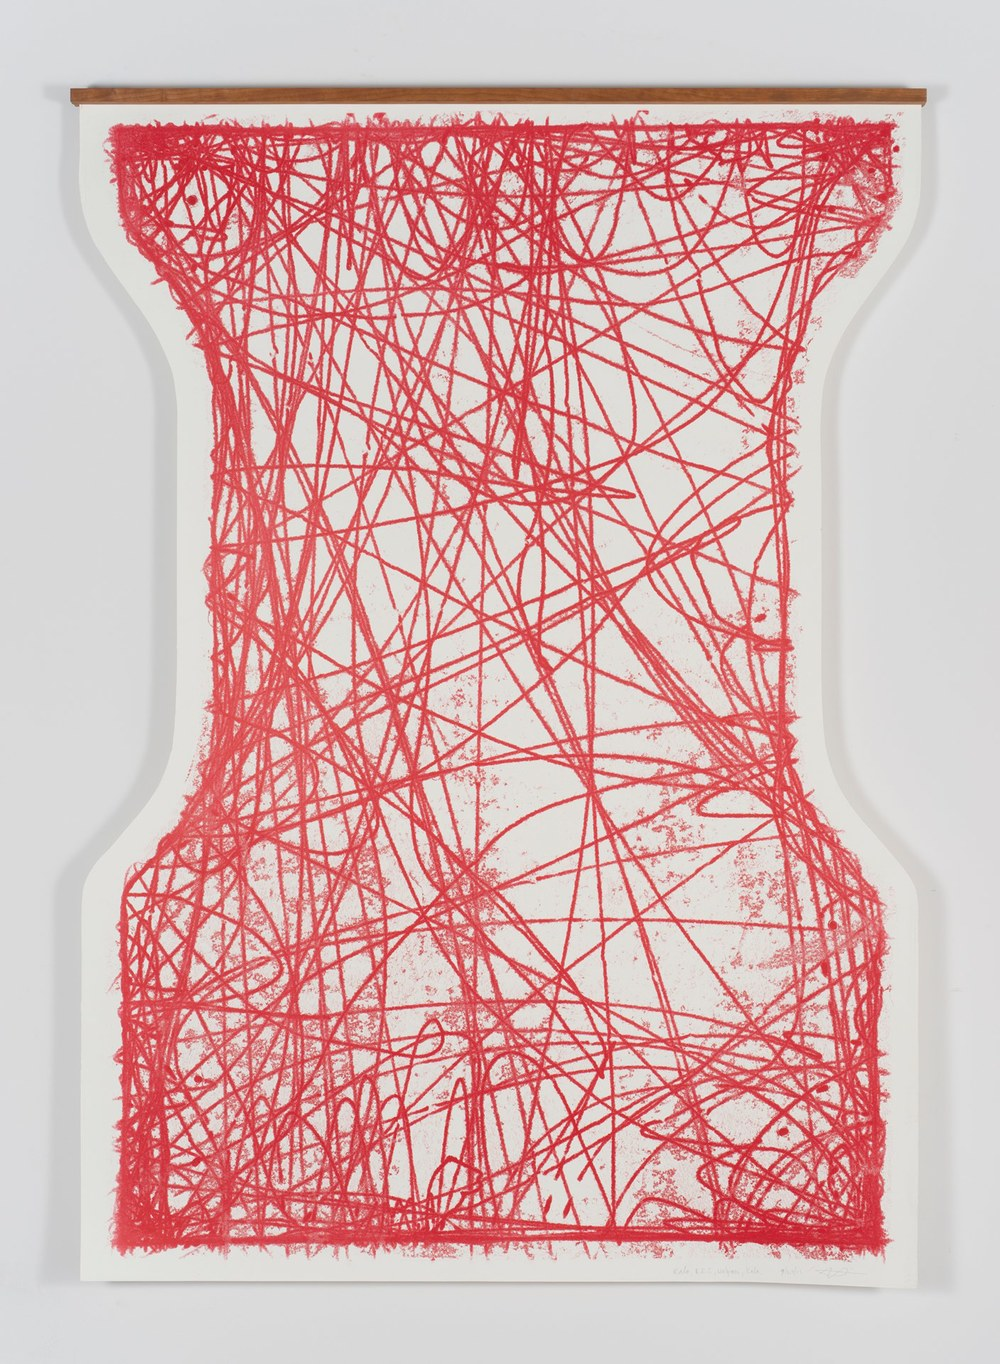 Jesse Houlding Truck Drawing- Kala, REI, Walgreens, Kala, 2012 rubber based ink, paper 72 x 48 inches